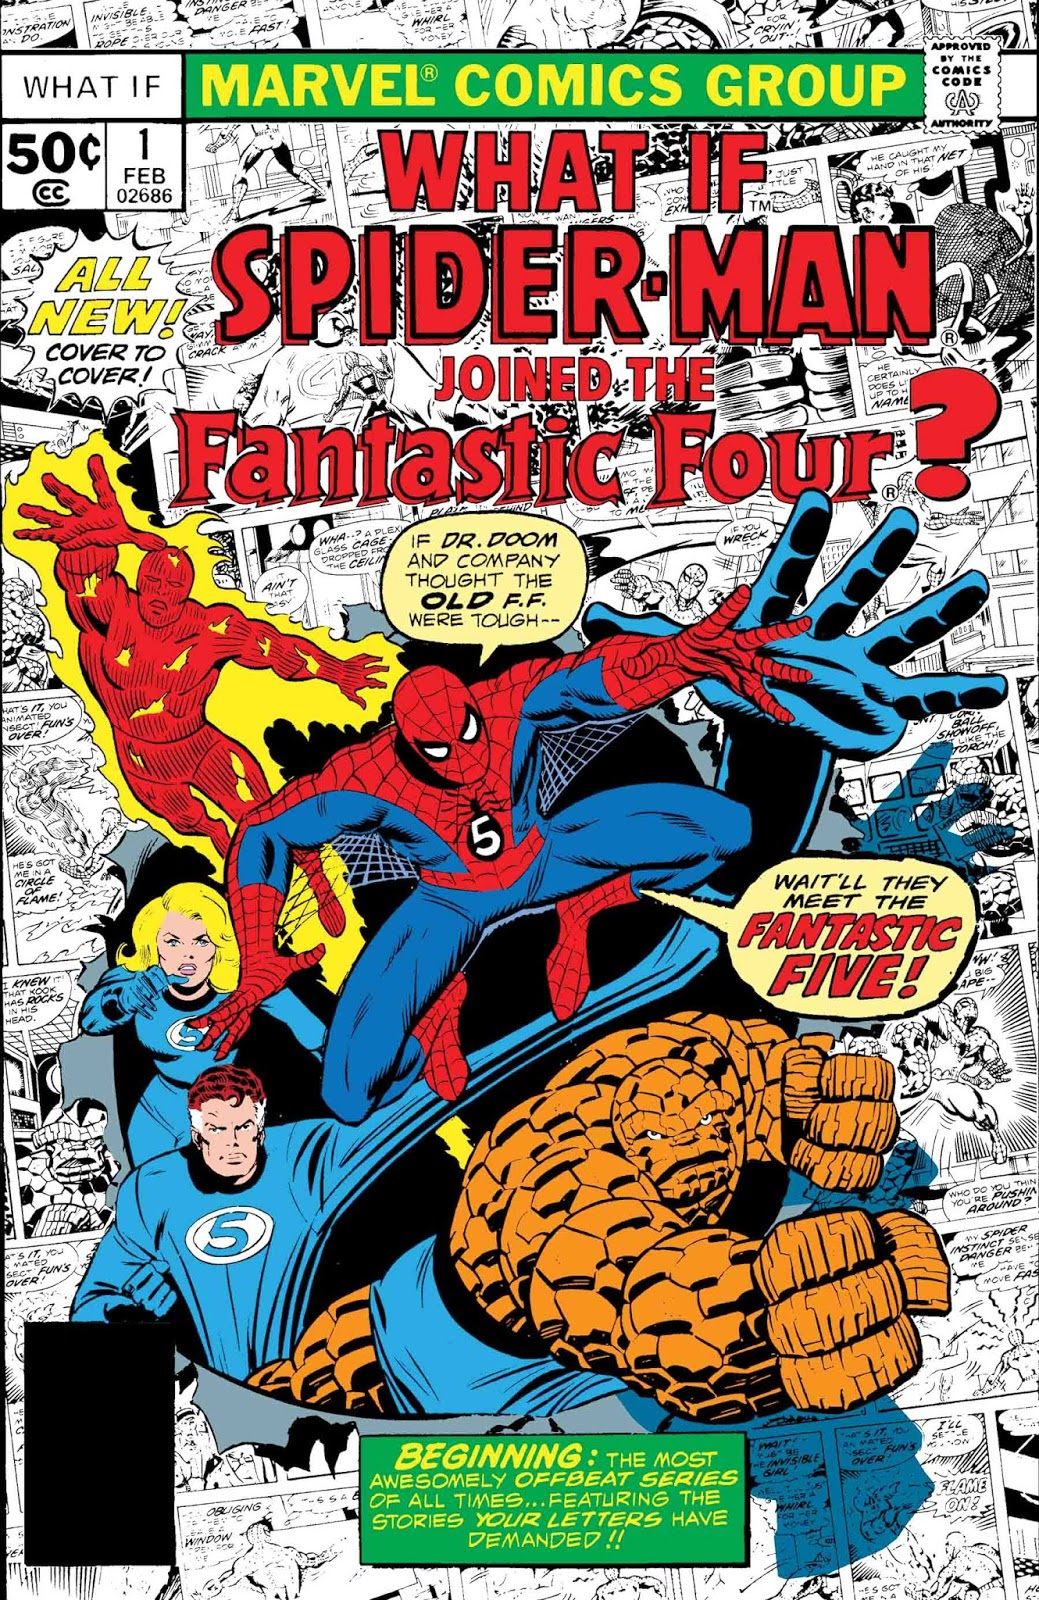 TRUE BELIEVERS: FANTASTIC FOUR